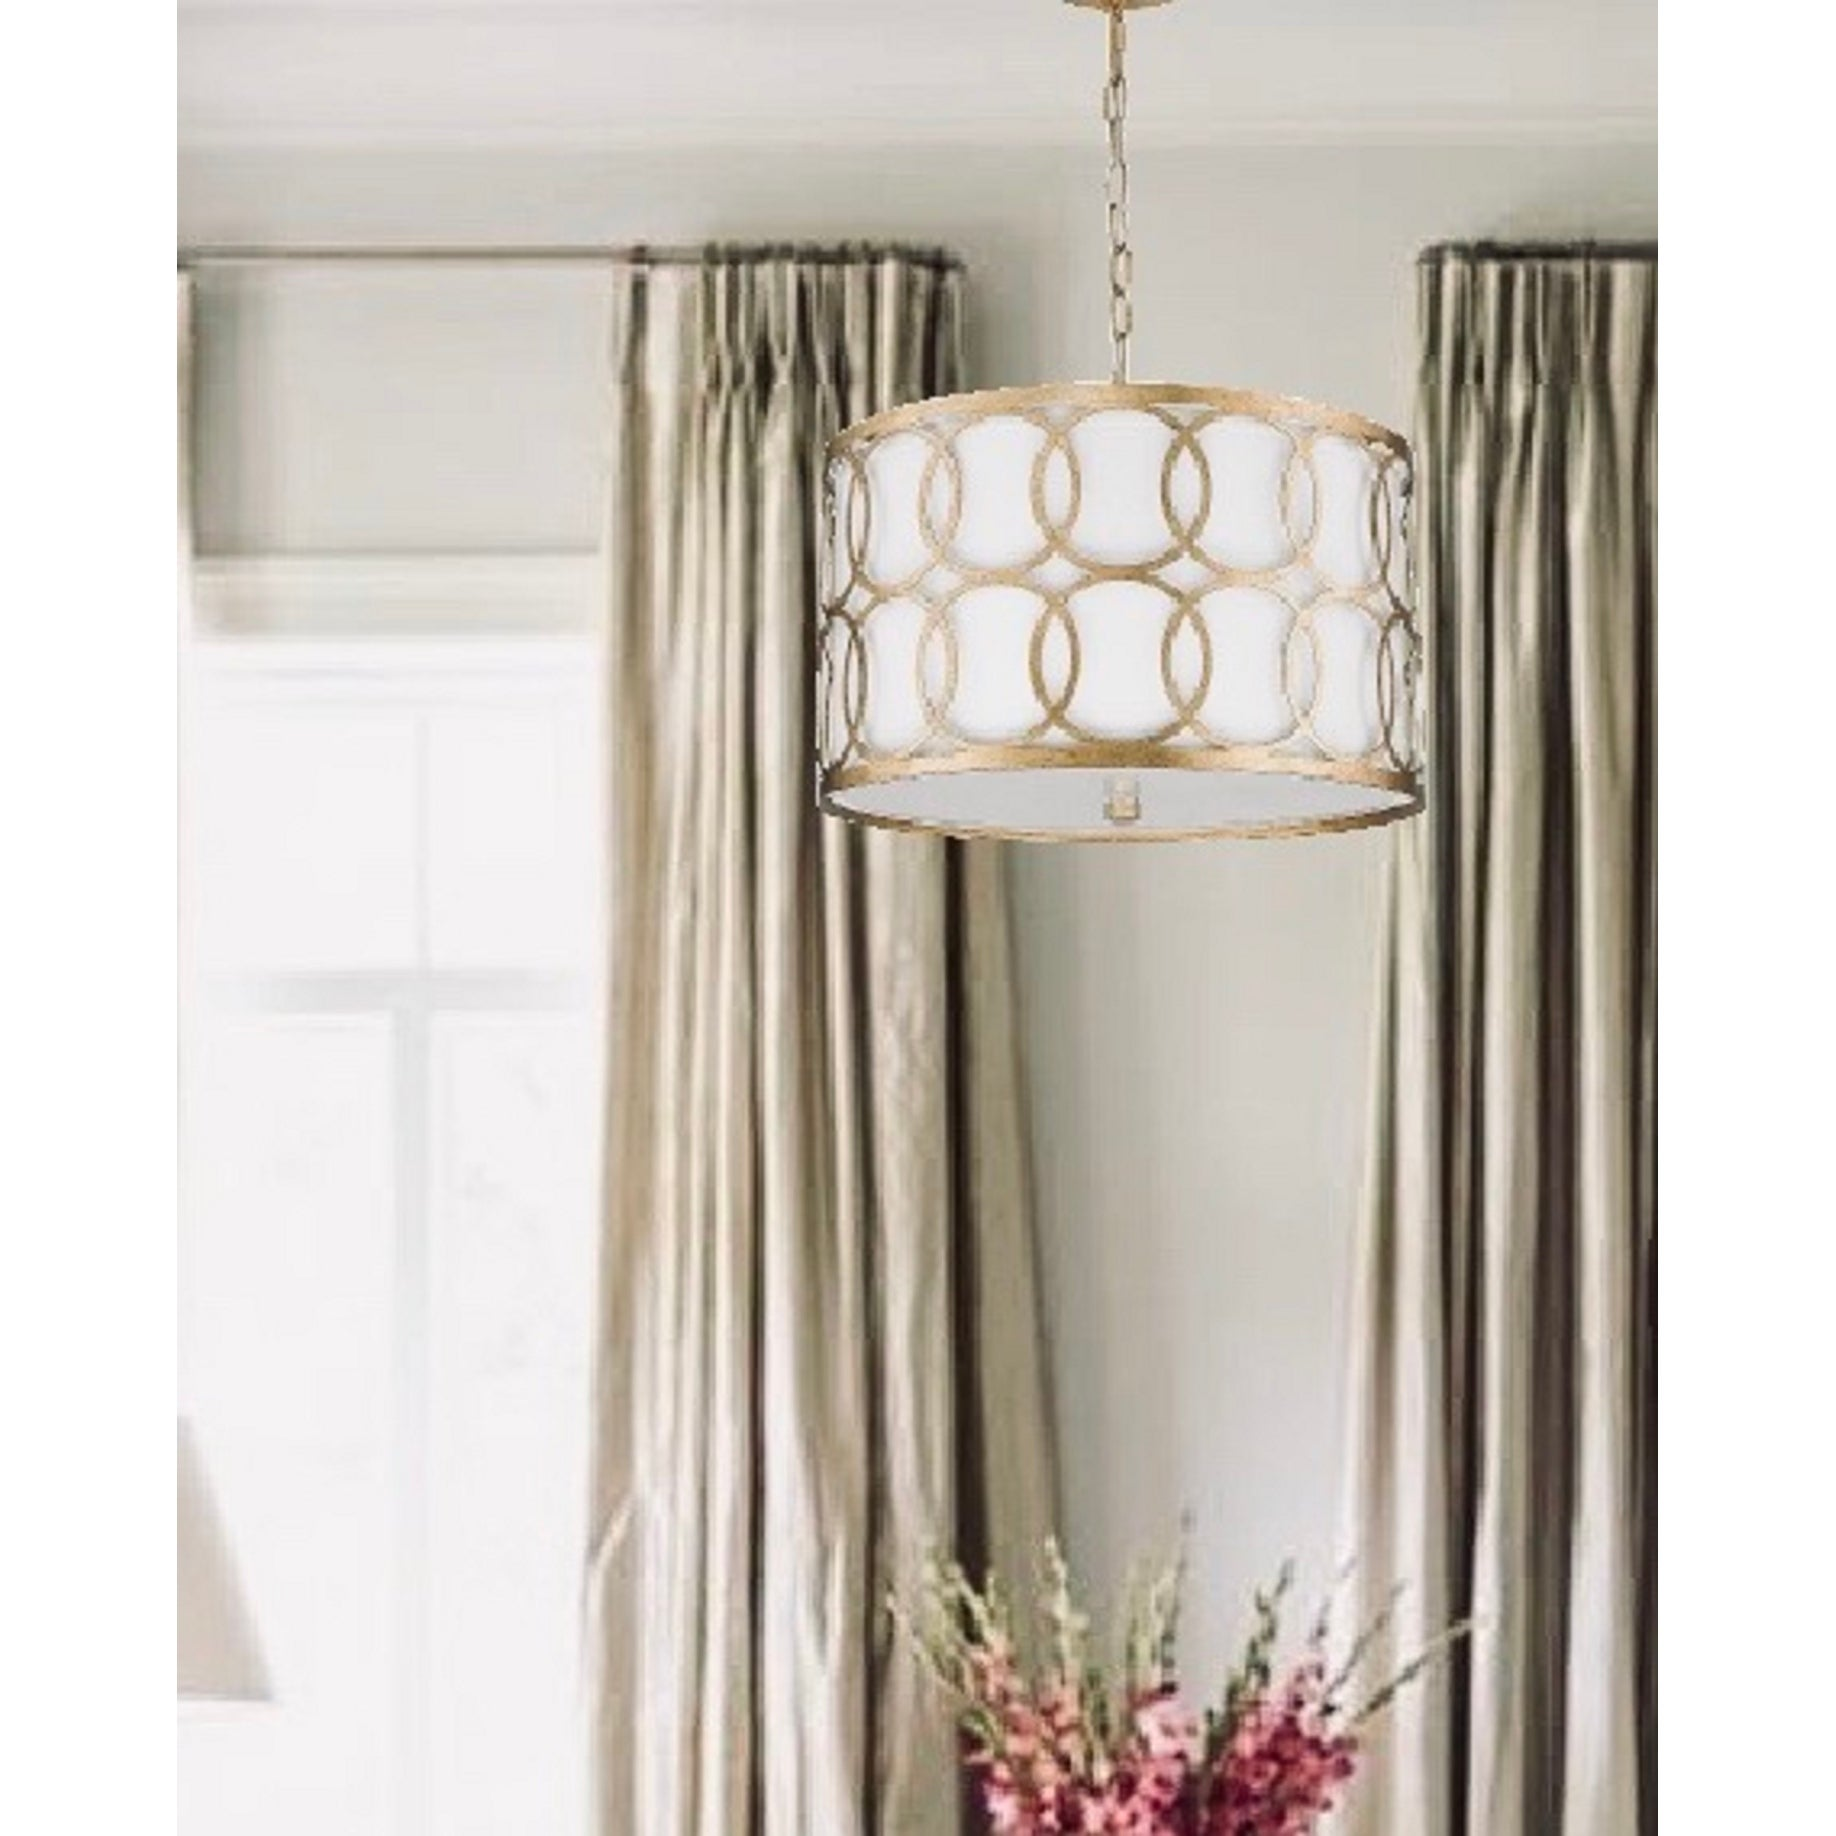 Gold Metal Drum Pendant With Geometric Shape Overstock 31424386